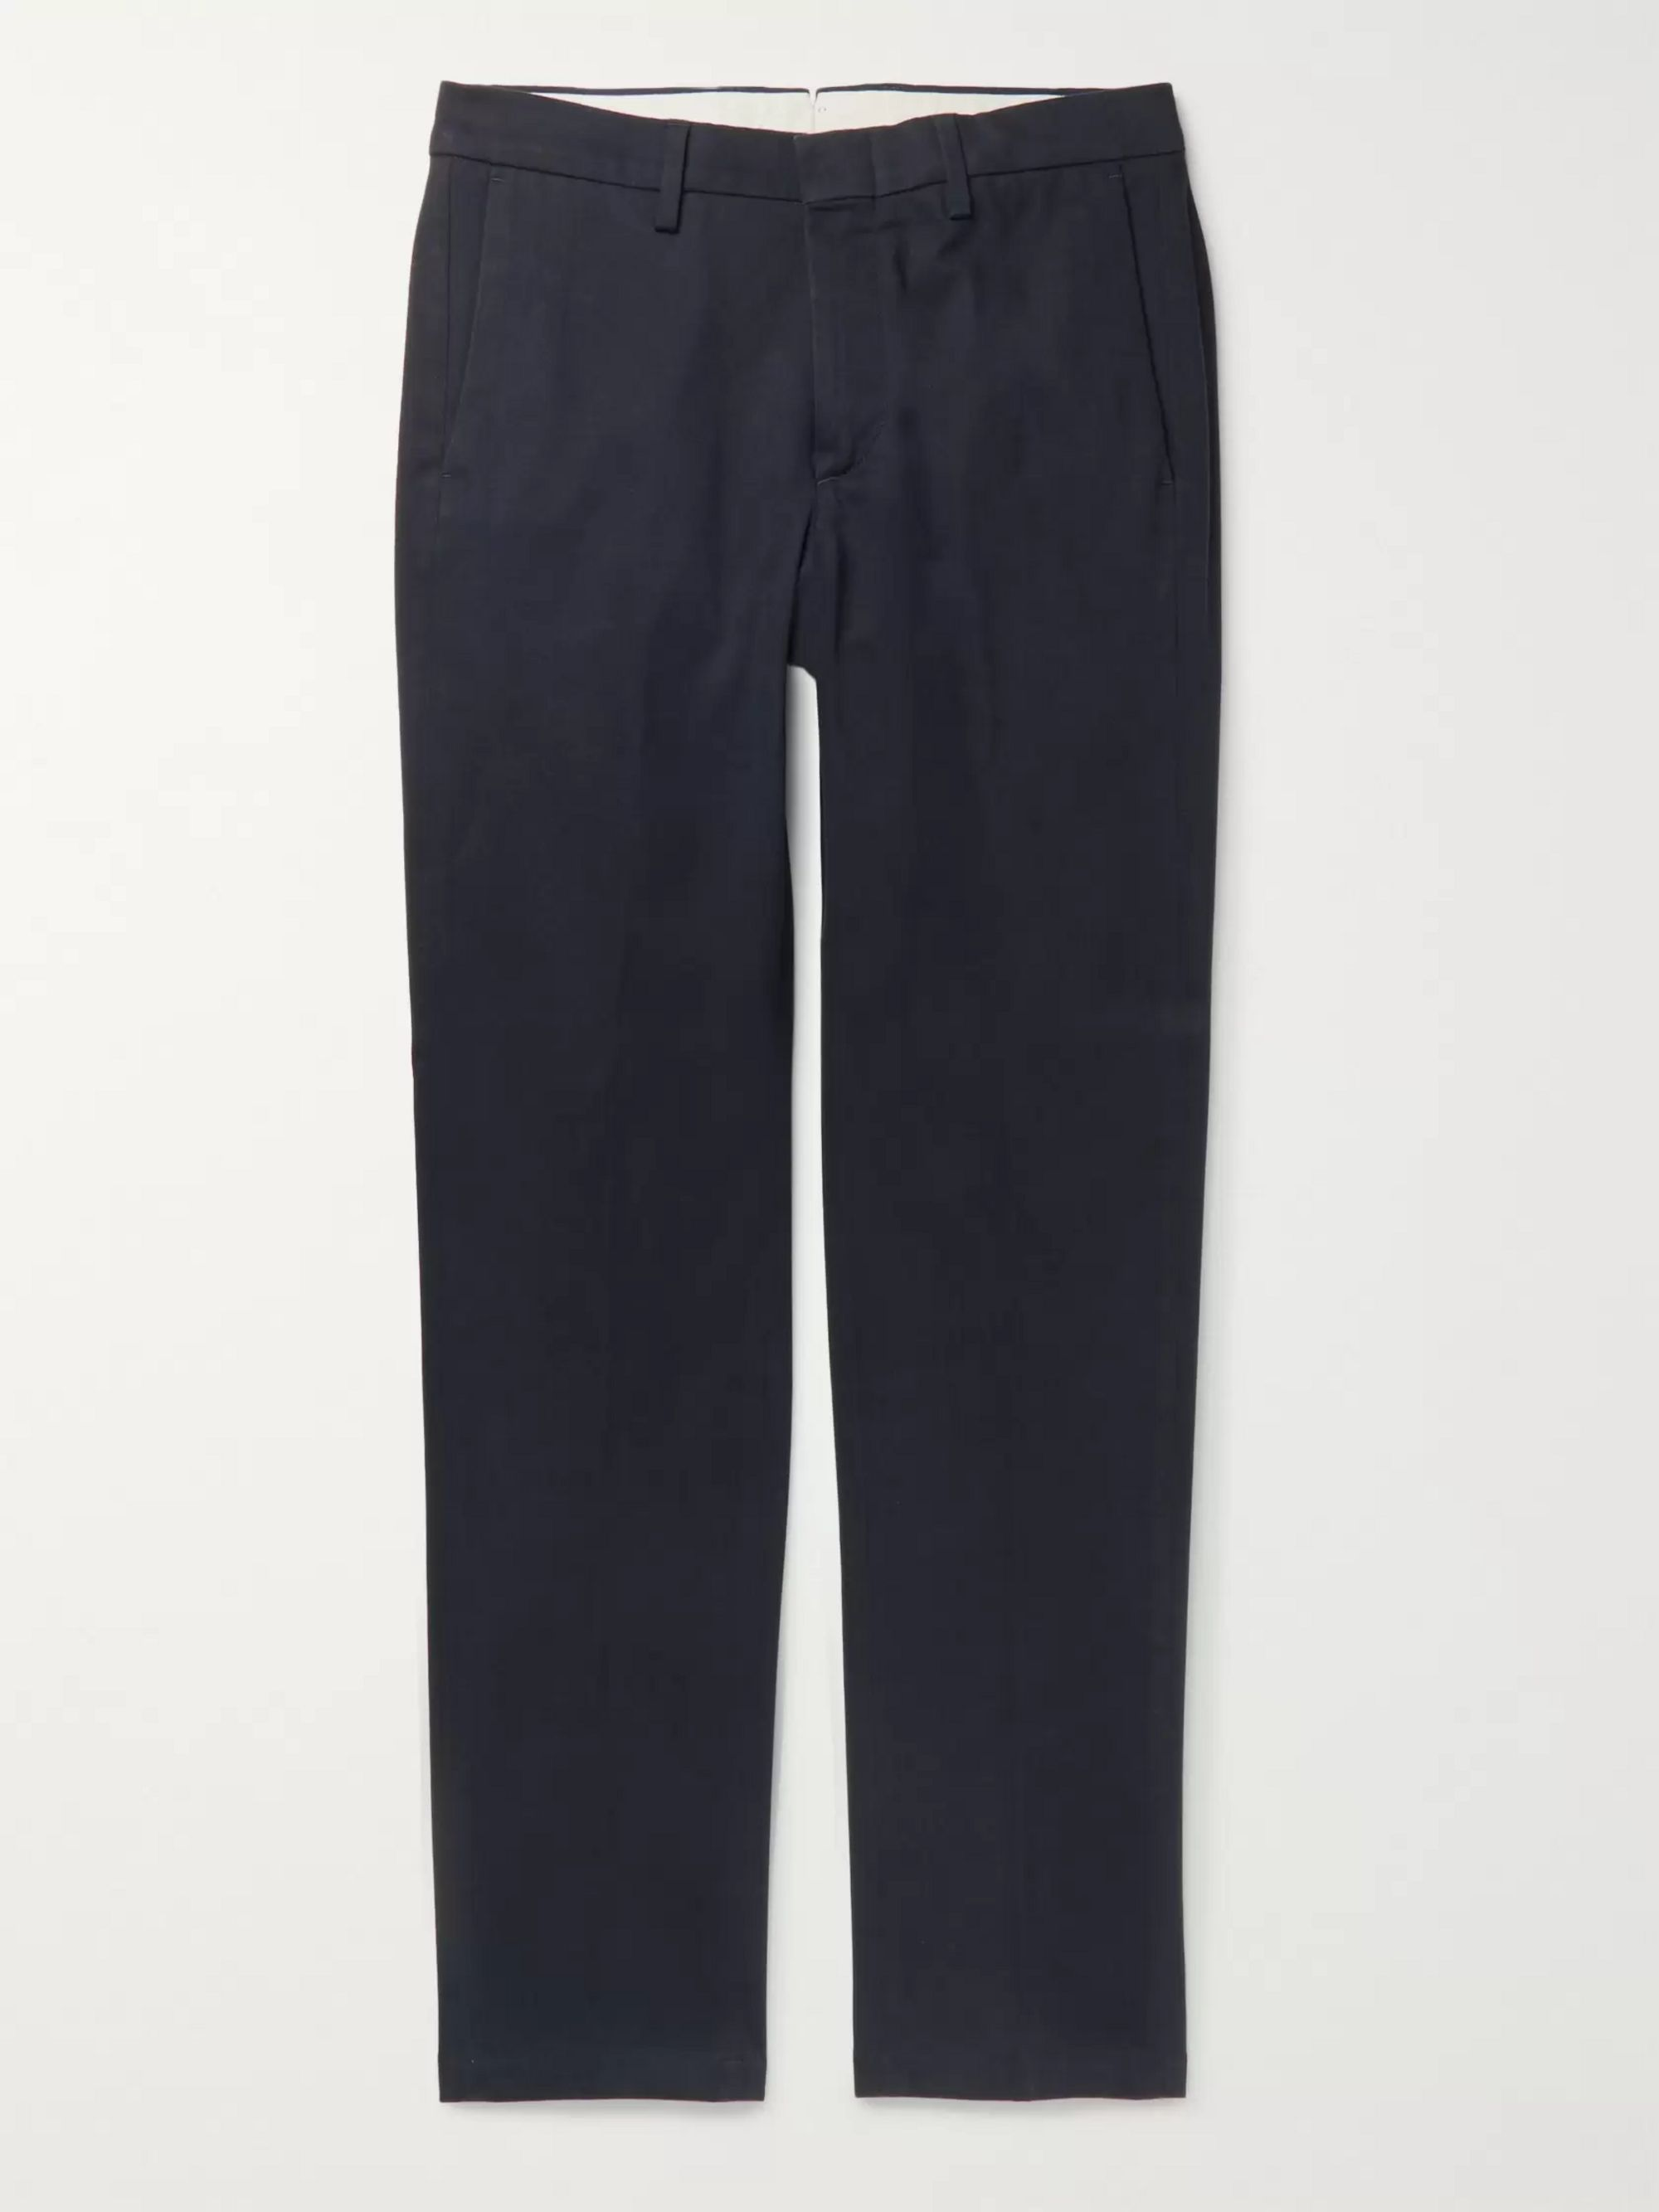 Dunhill Slim-Fit Stretch Cotton and Cashmere-Blend Twill Chinos